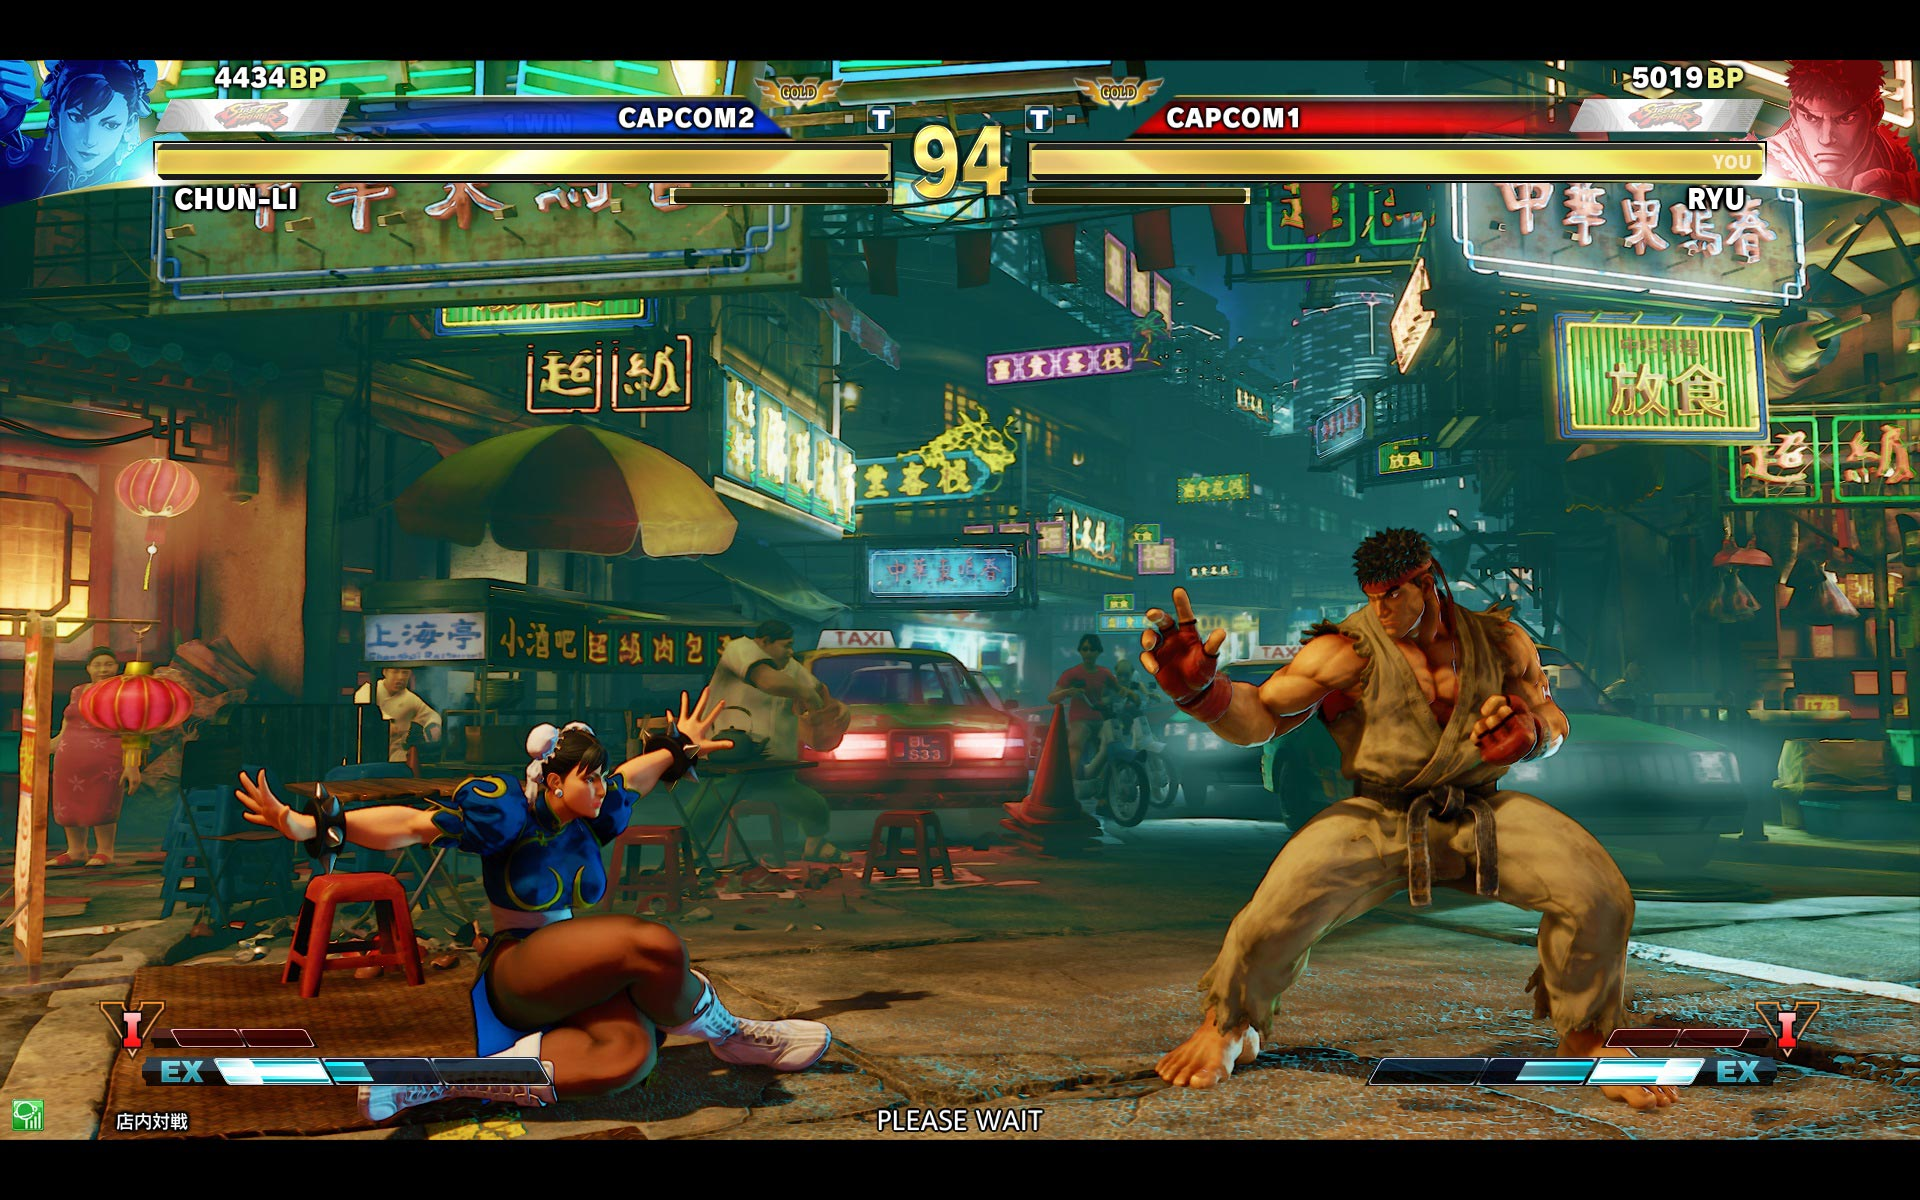 Street Fighter 5: Type Arcade launch 4 out of 6 image gallery